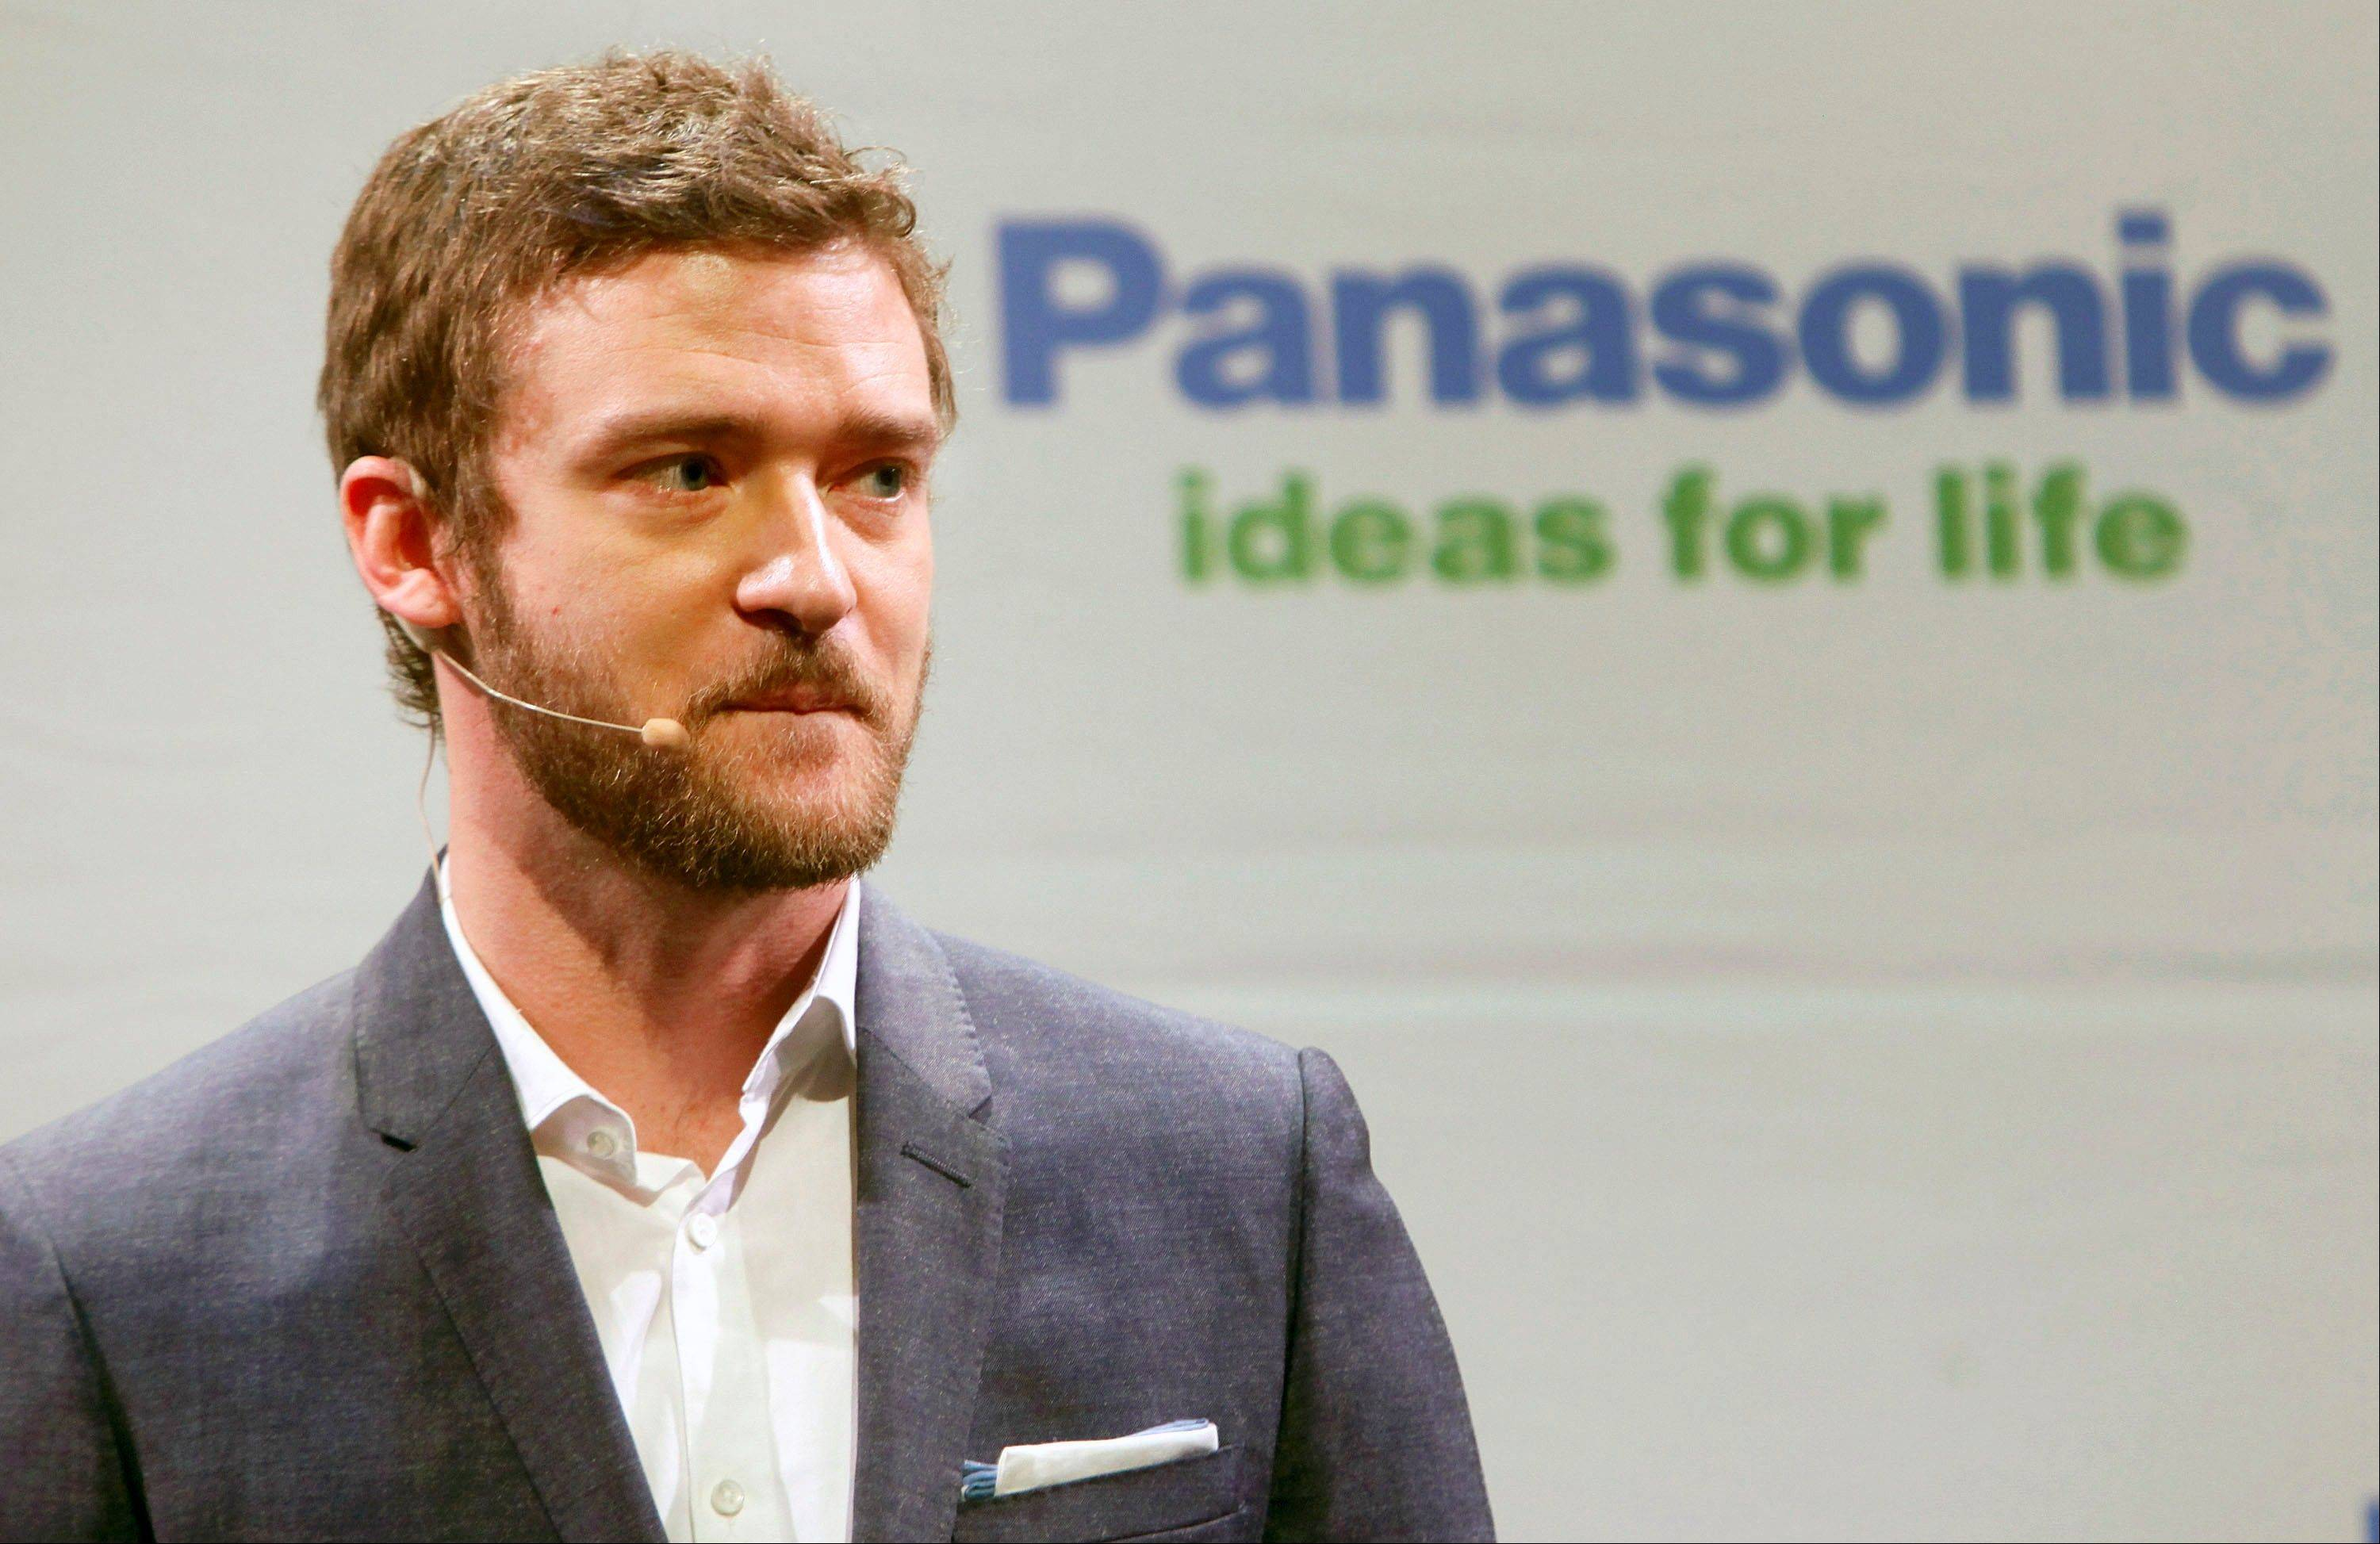 Myspace investor Justin Timberlake is featured in what is another comeback attempt by the social network site.